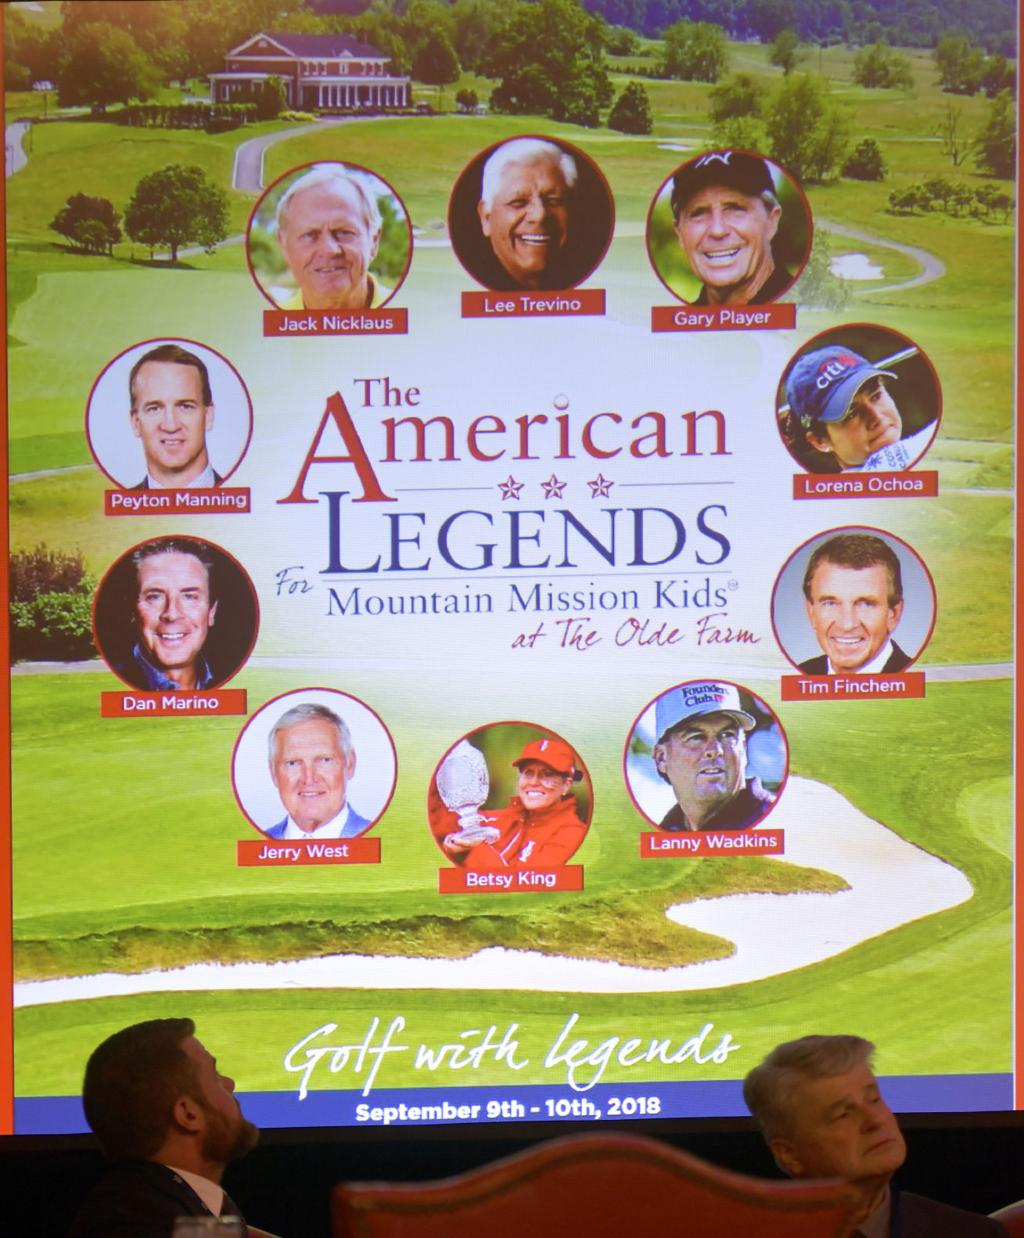 The American Legends for Mountain Mission Kids at The Olde Farm